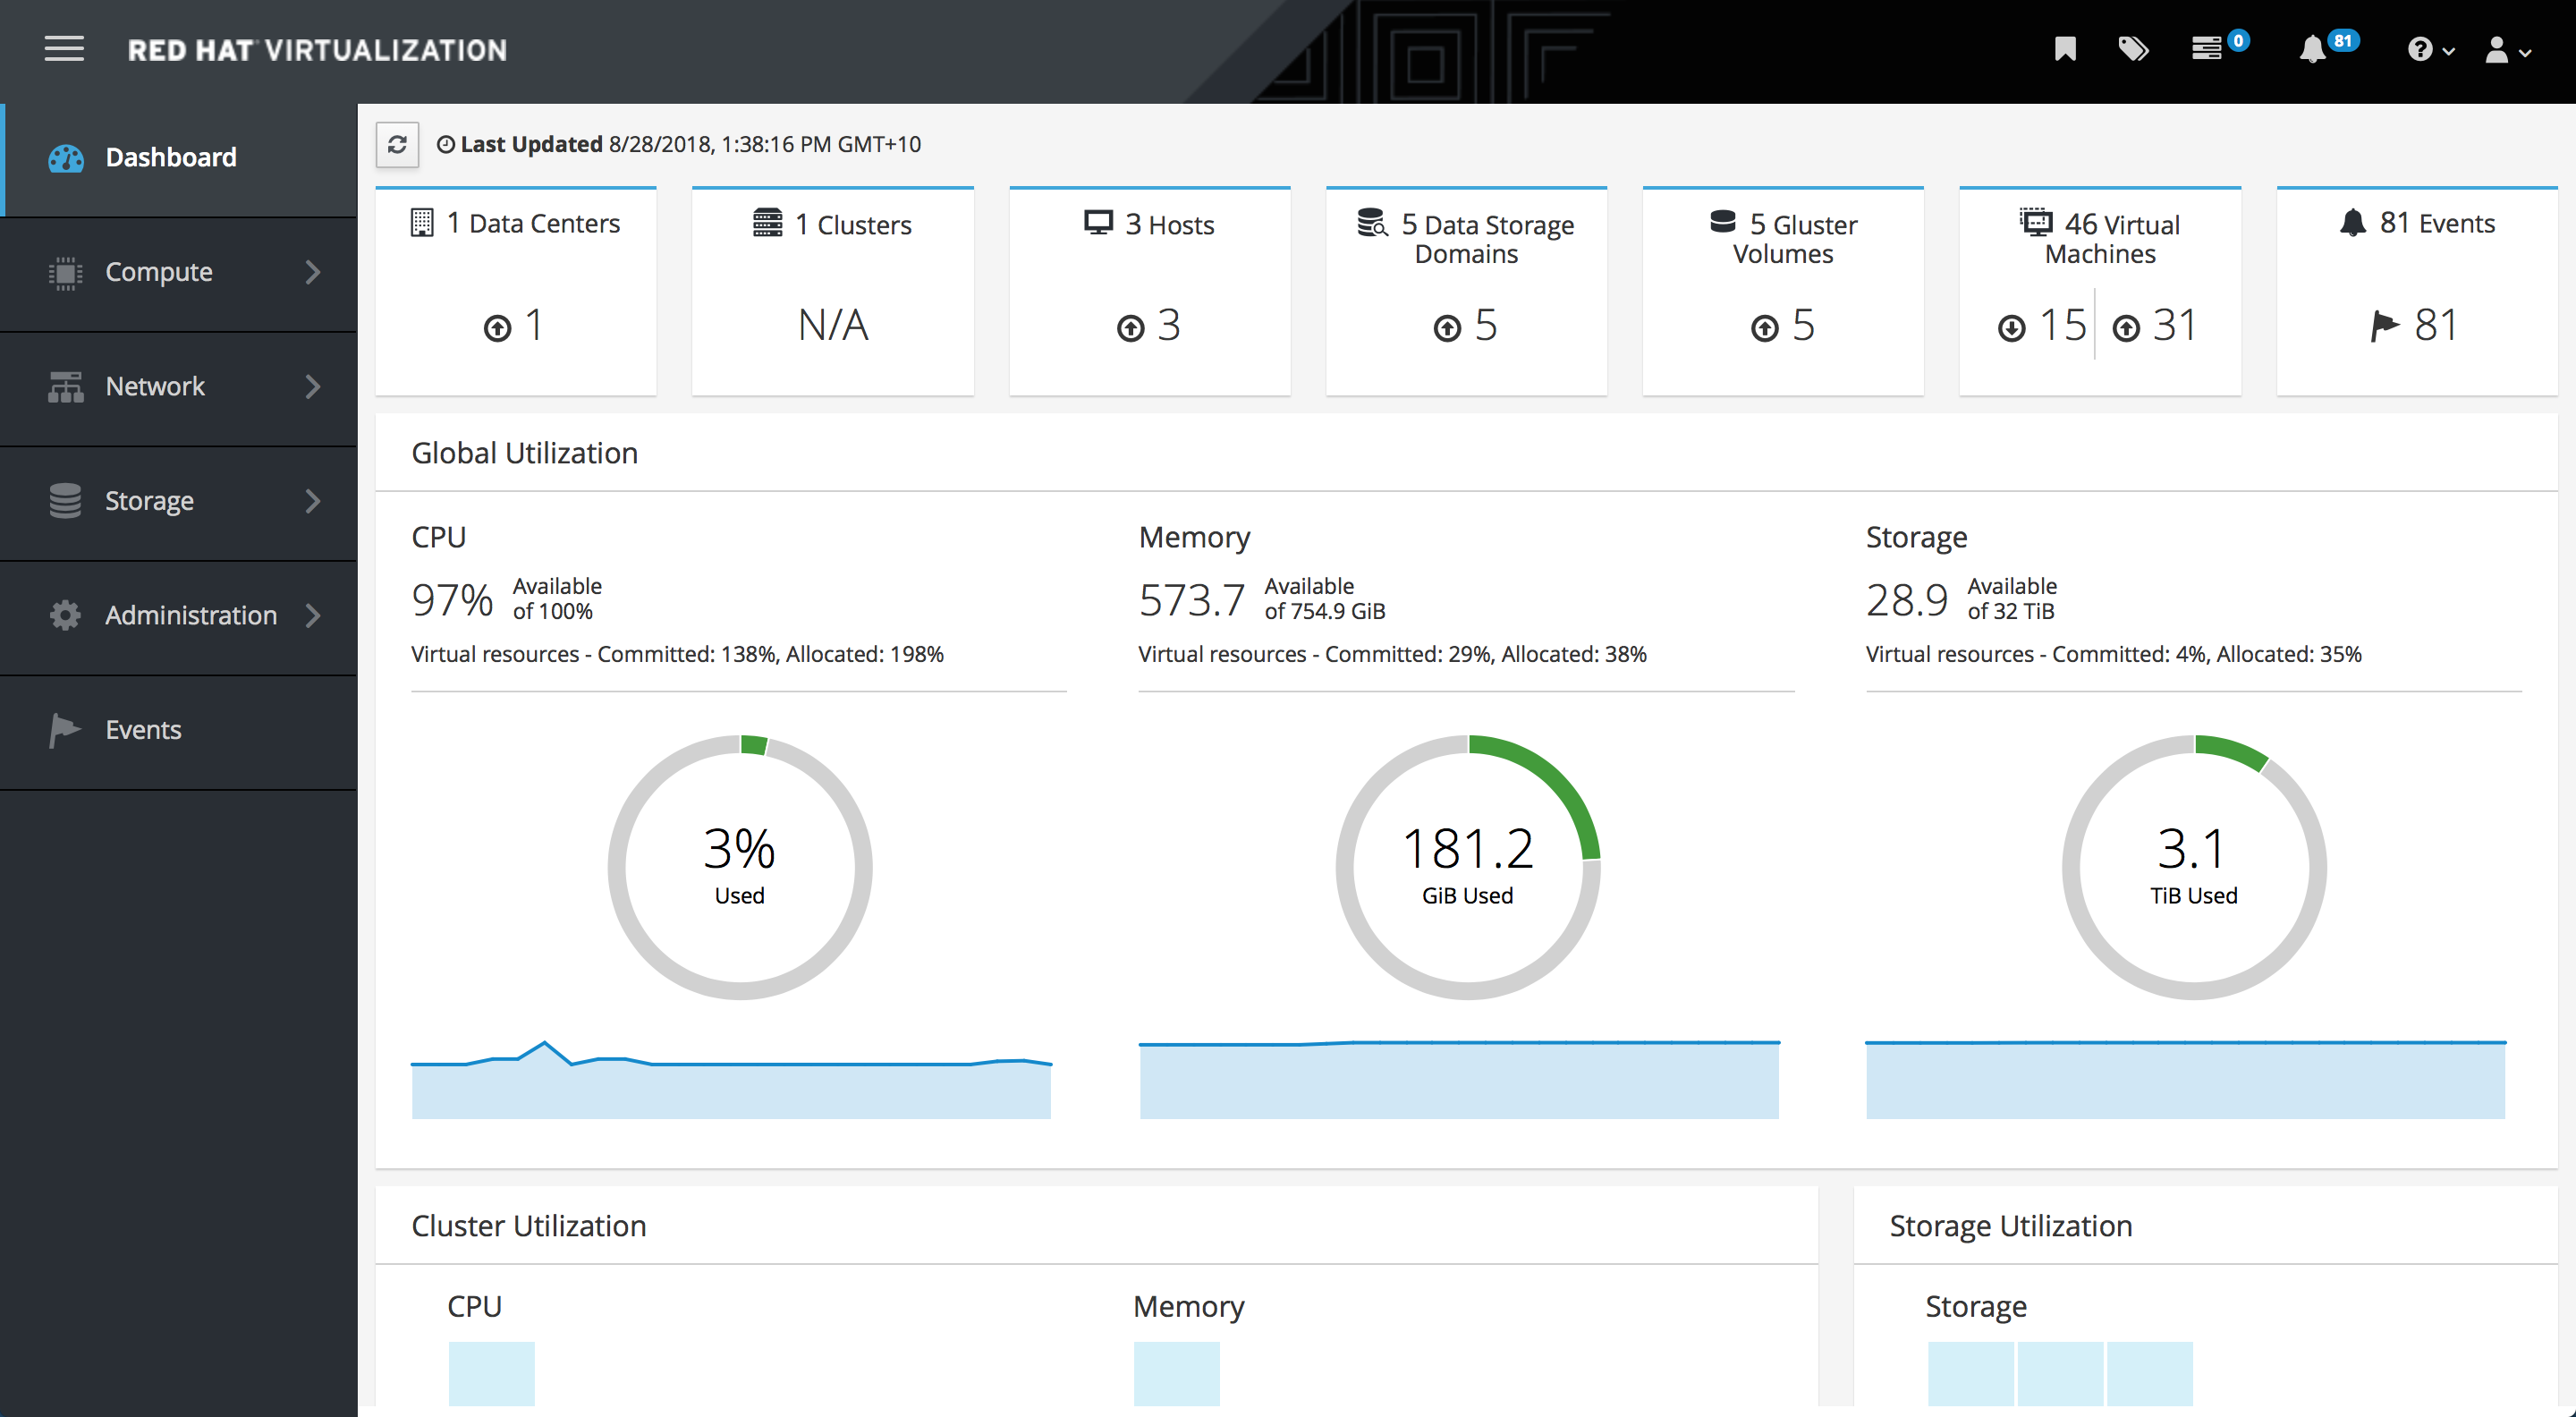 Administration Console Dashboard